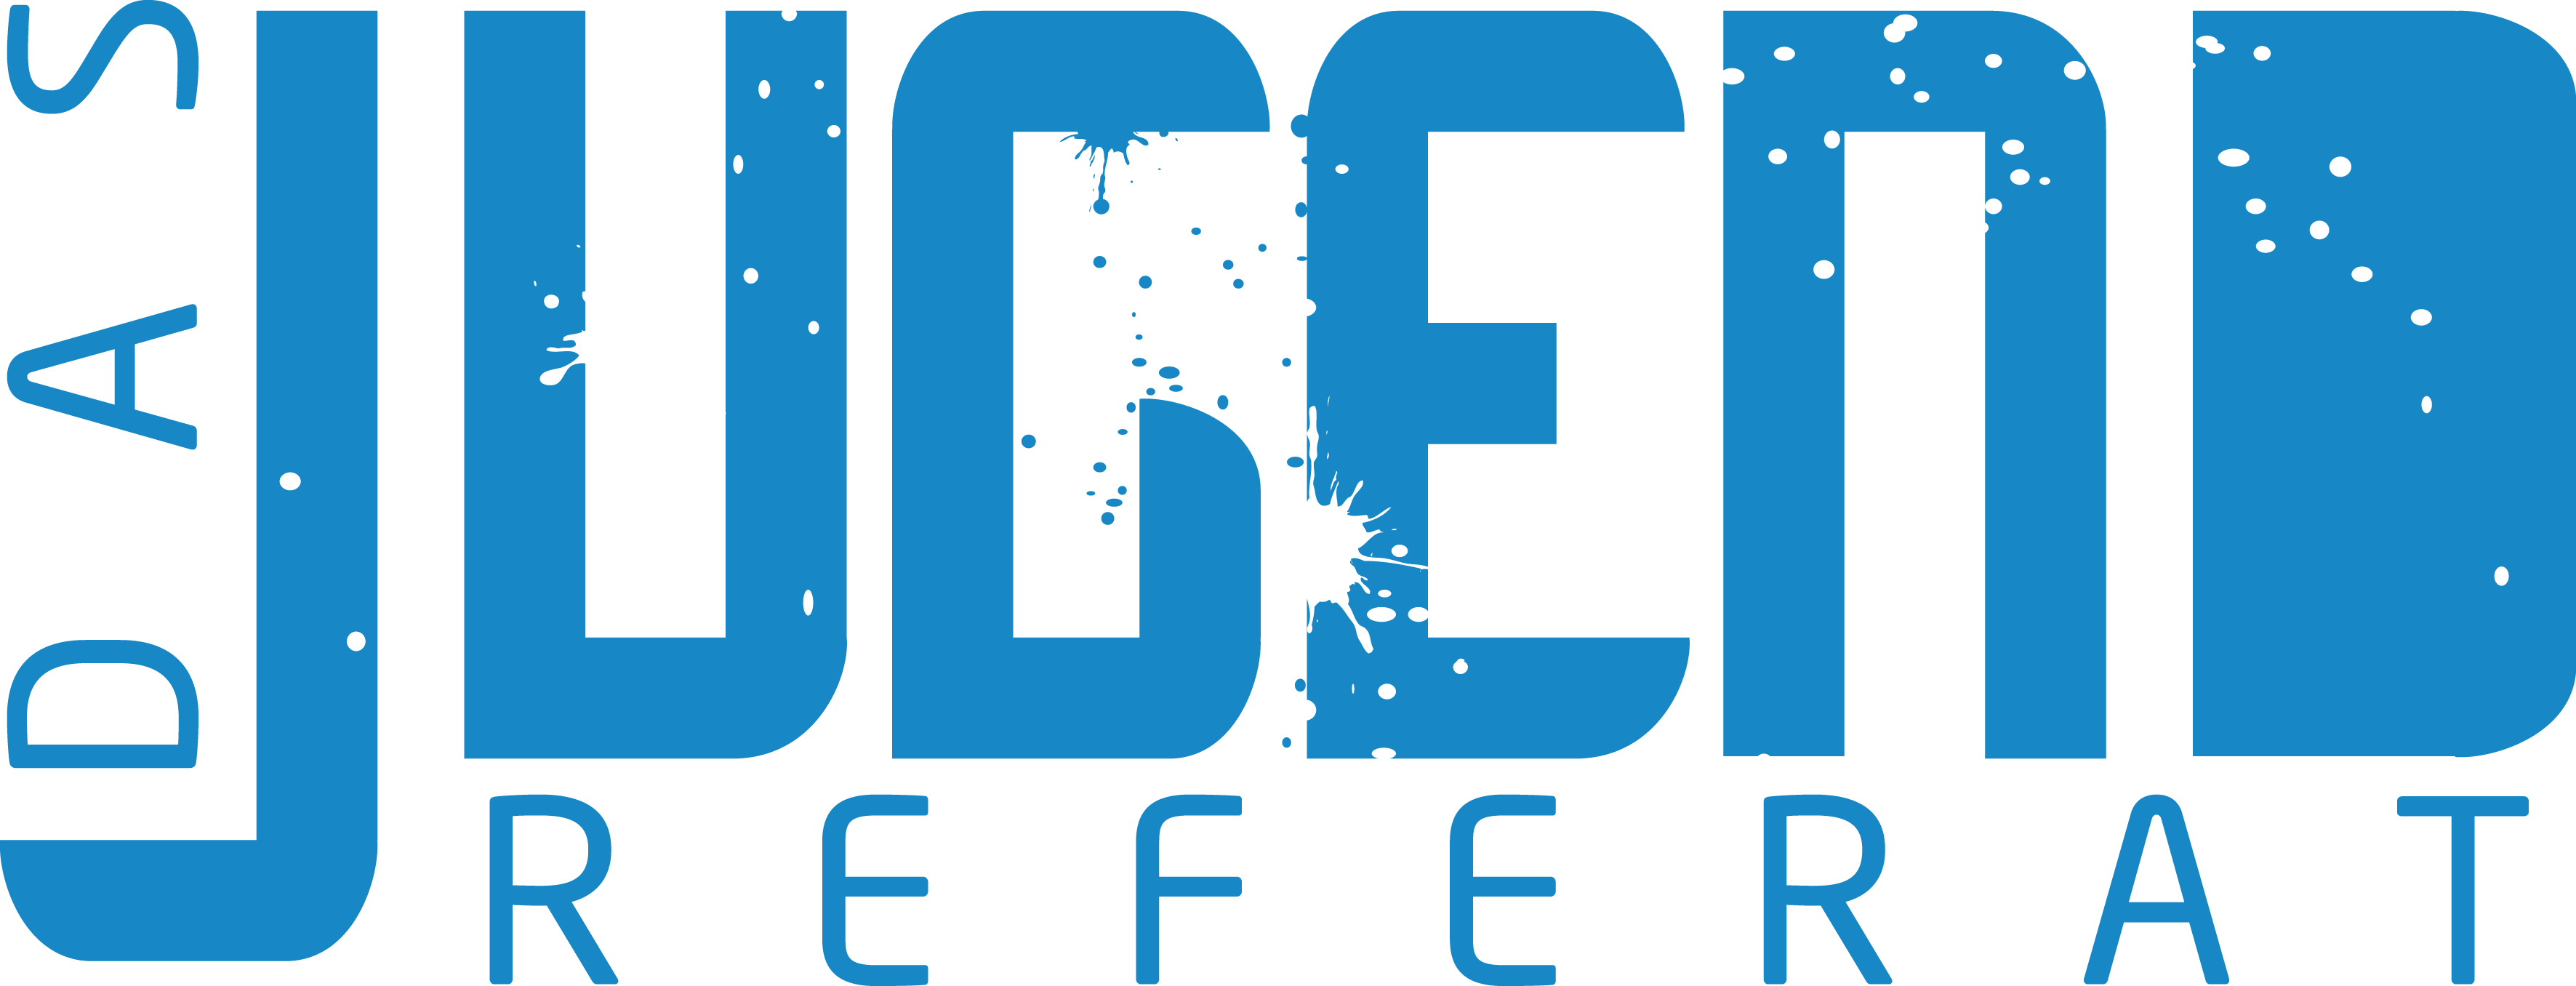 Logo des Jugendreferates